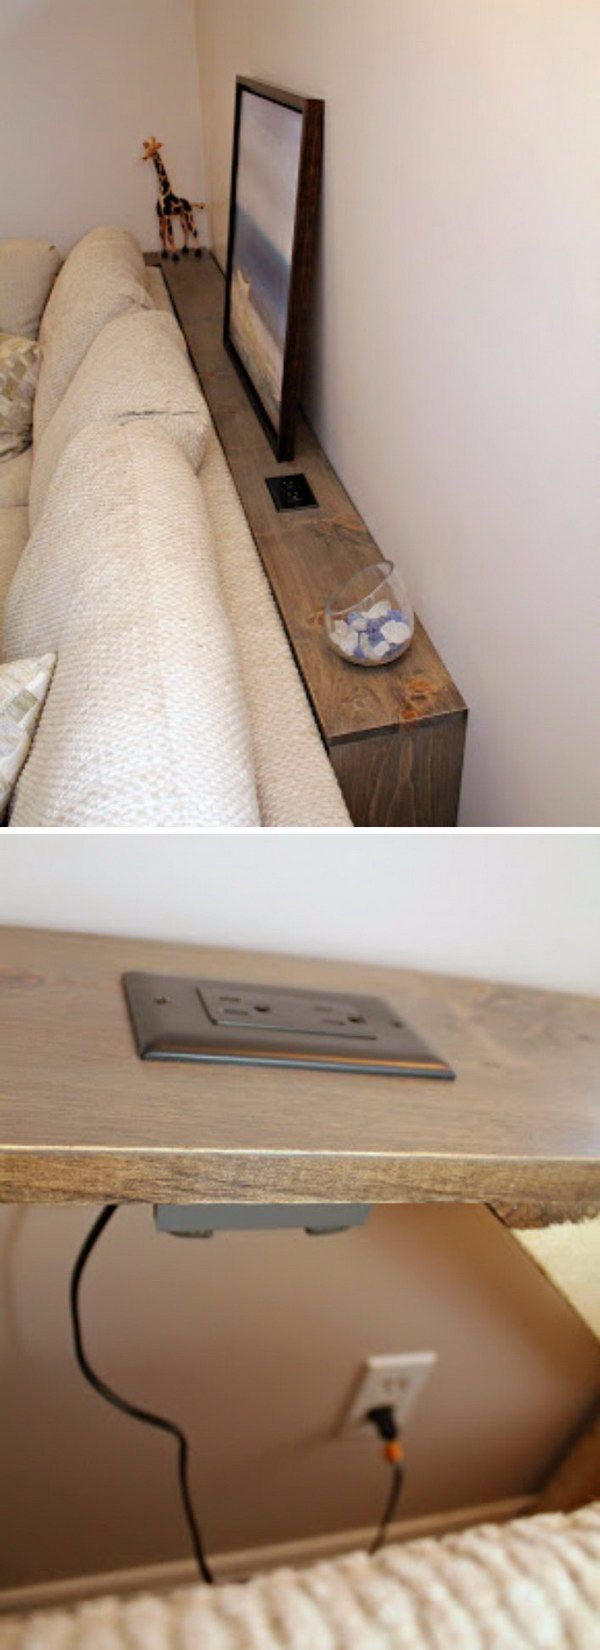 This Diy Sofa Table Has A Built In Outlet Which Allows You Plug Your Electronics